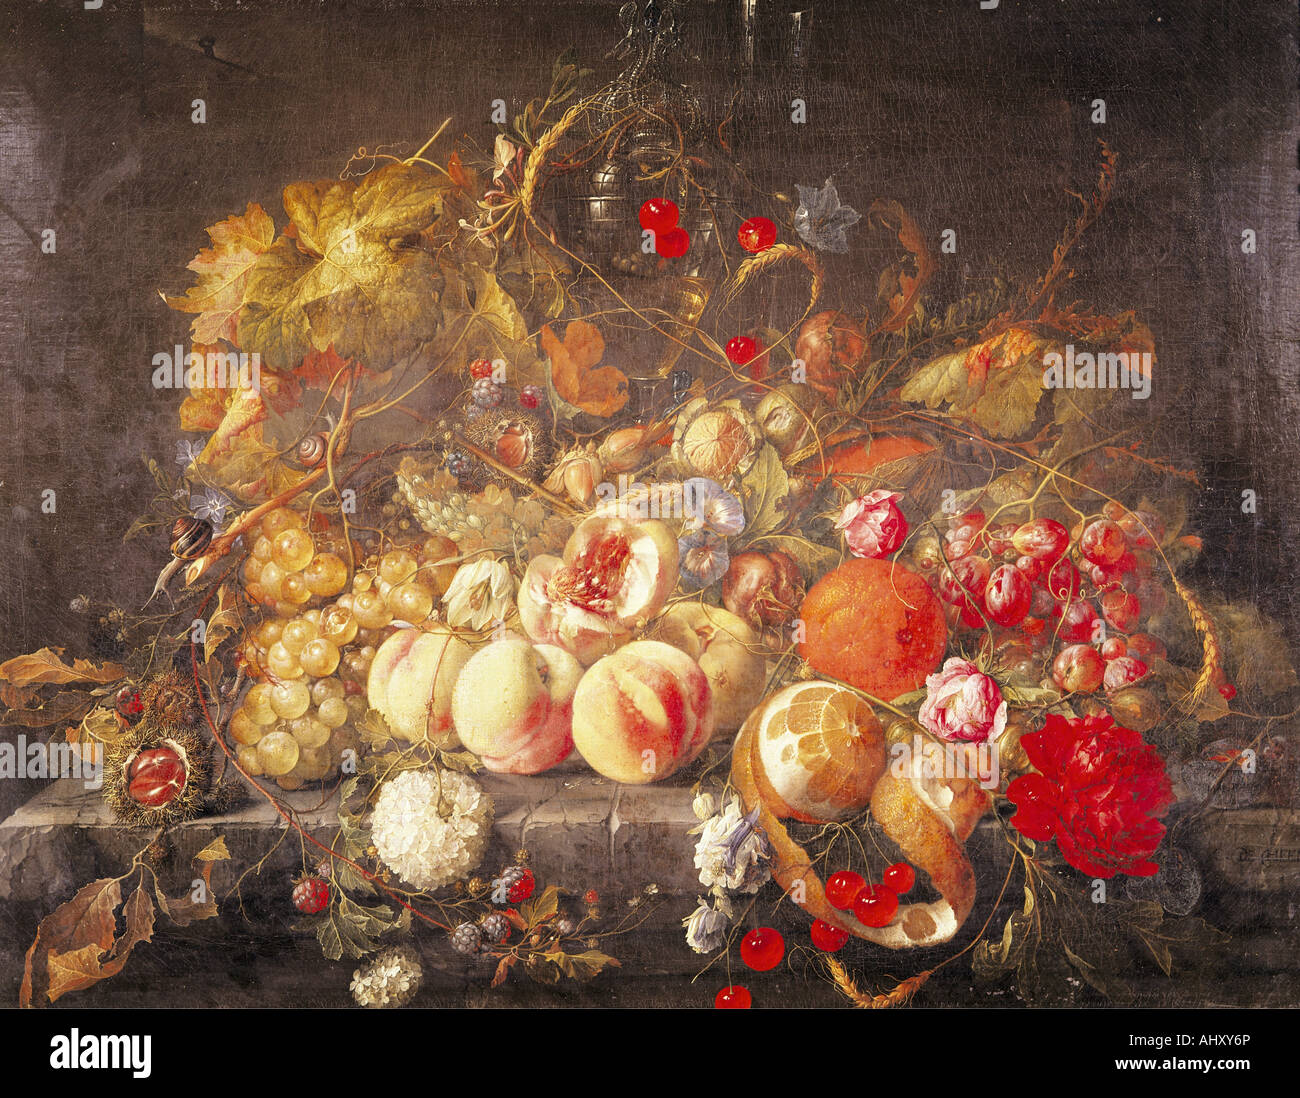 'fine arts, Heem, Jan Davidsz de, (1606 - 1684), painting, 'still life', oil on panel, 55,8 cm x 73,5 - Stock Image